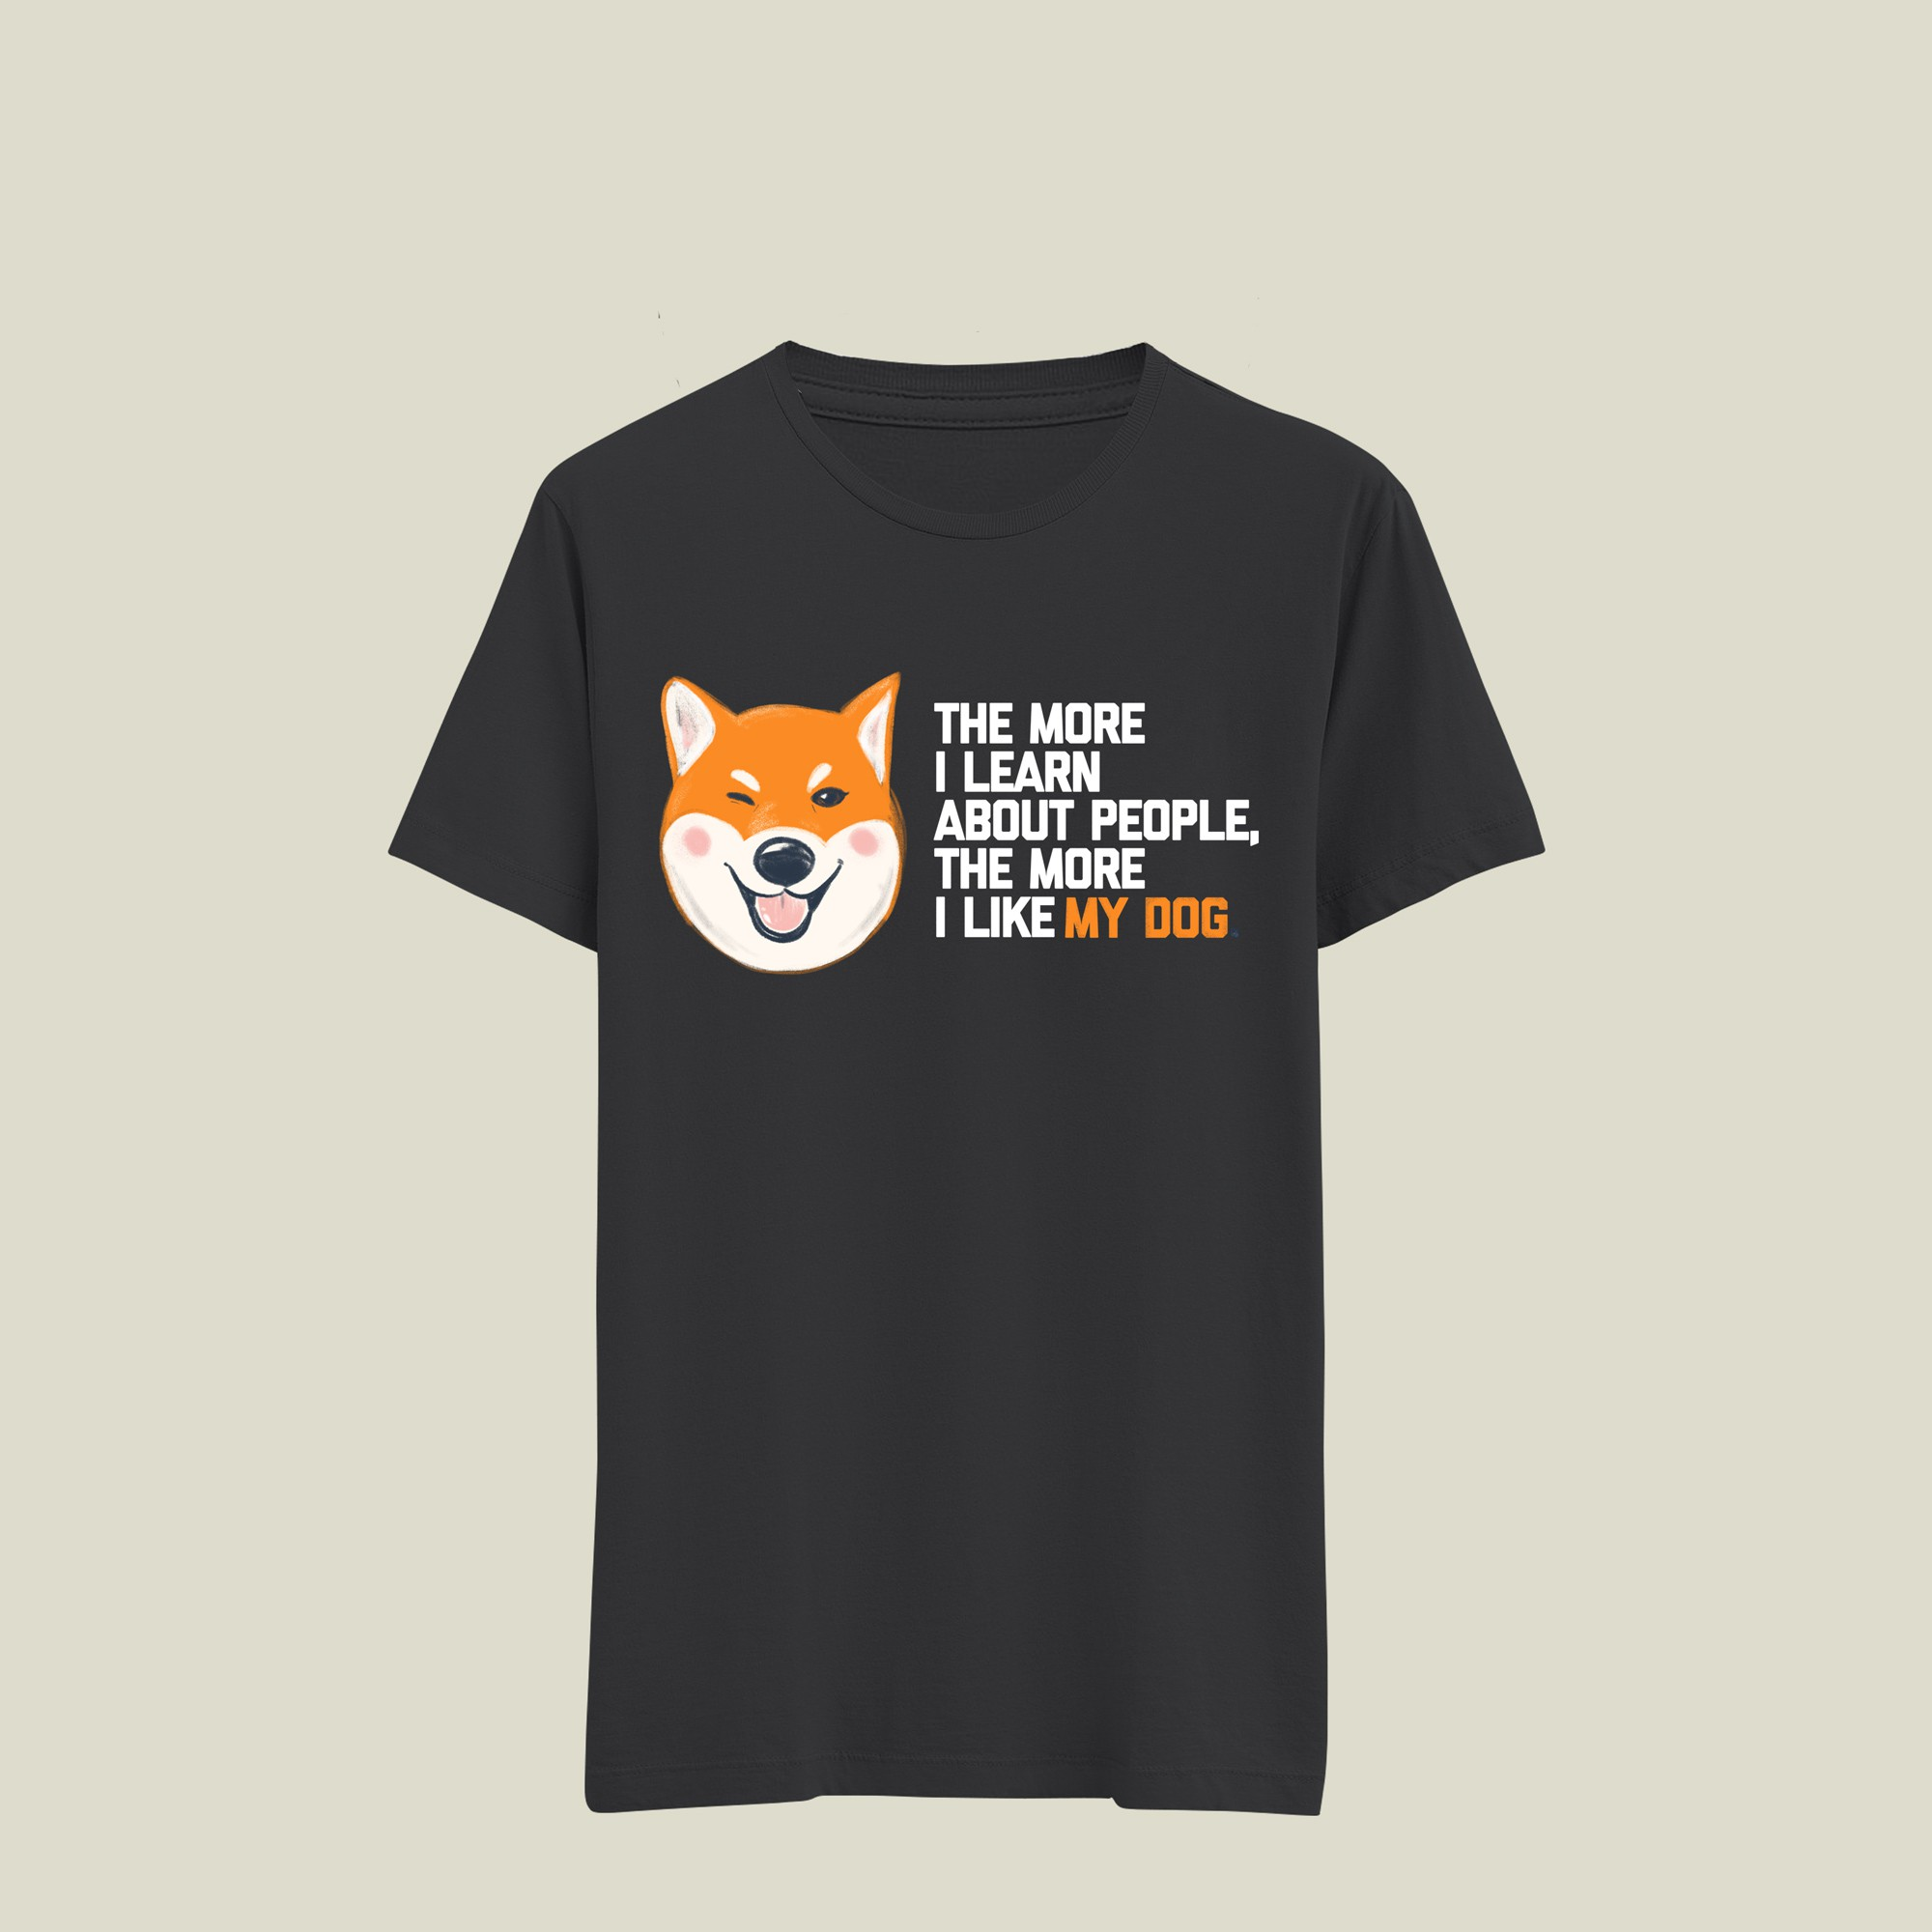 Design a shirt ever Pooch lover will want to wear